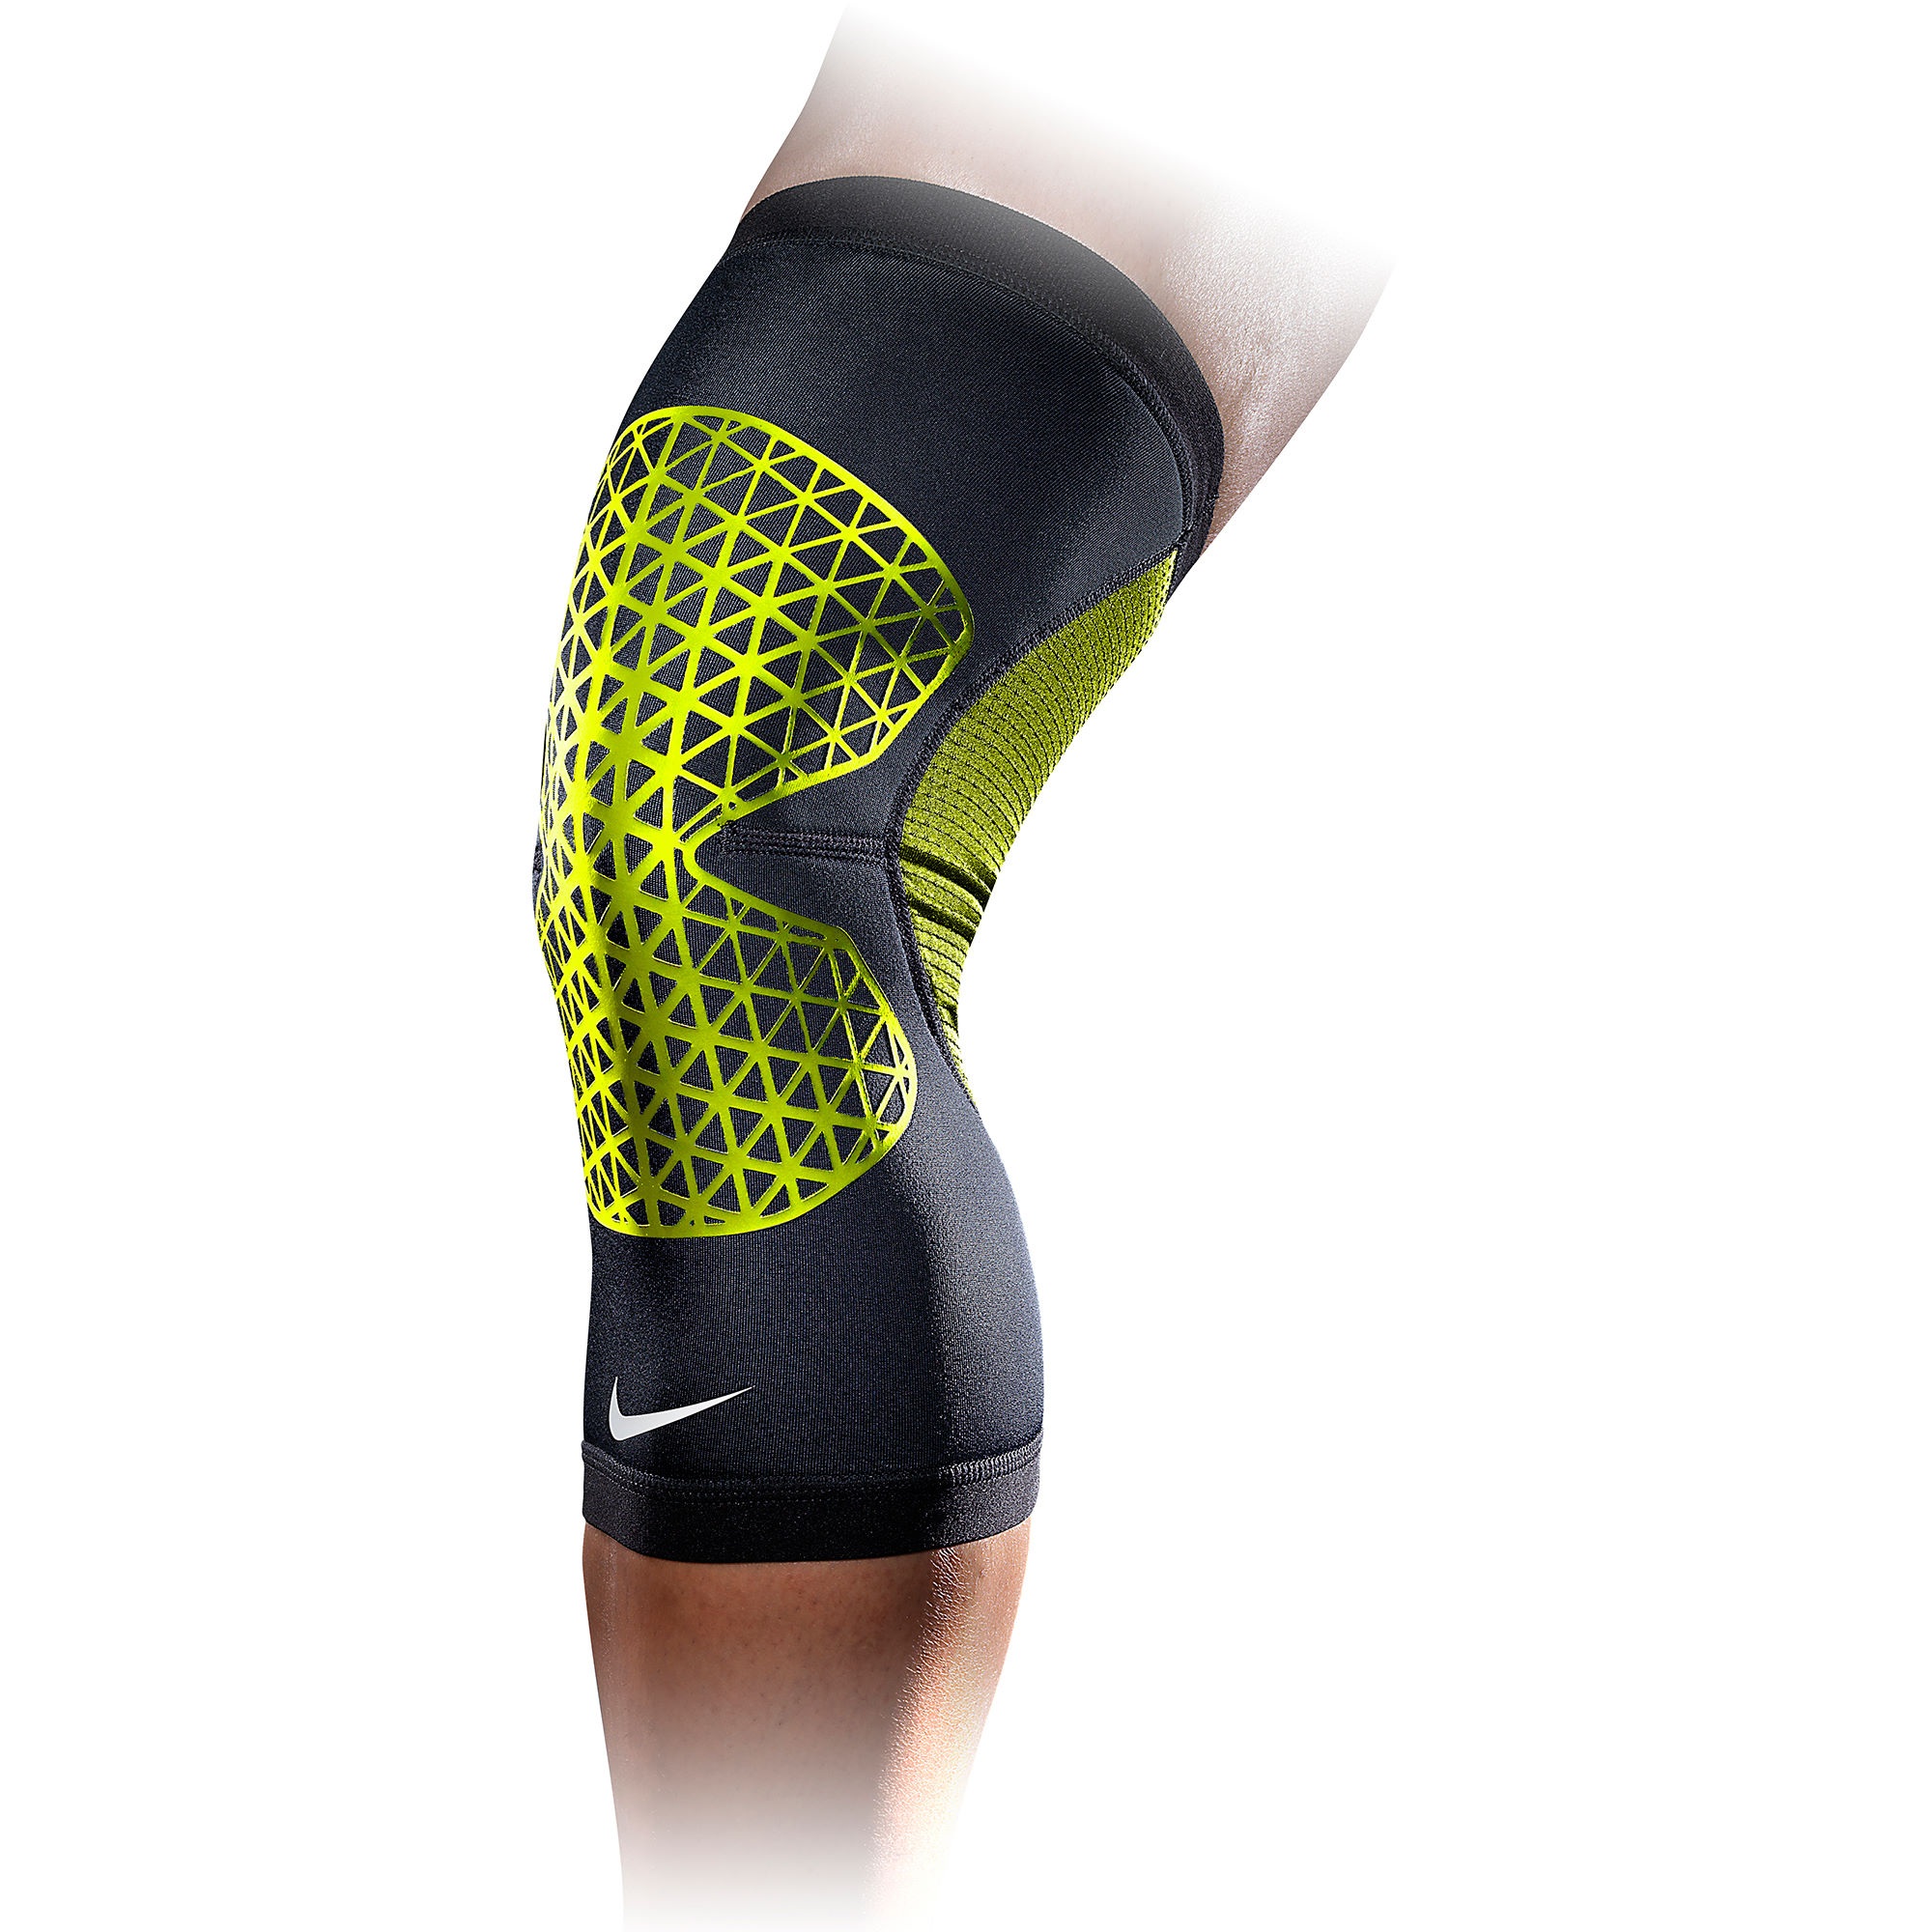 wiggle nike pro combat knee sleeve fa14 first aid injury. Black Bedroom Furniture Sets. Home Design Ideas